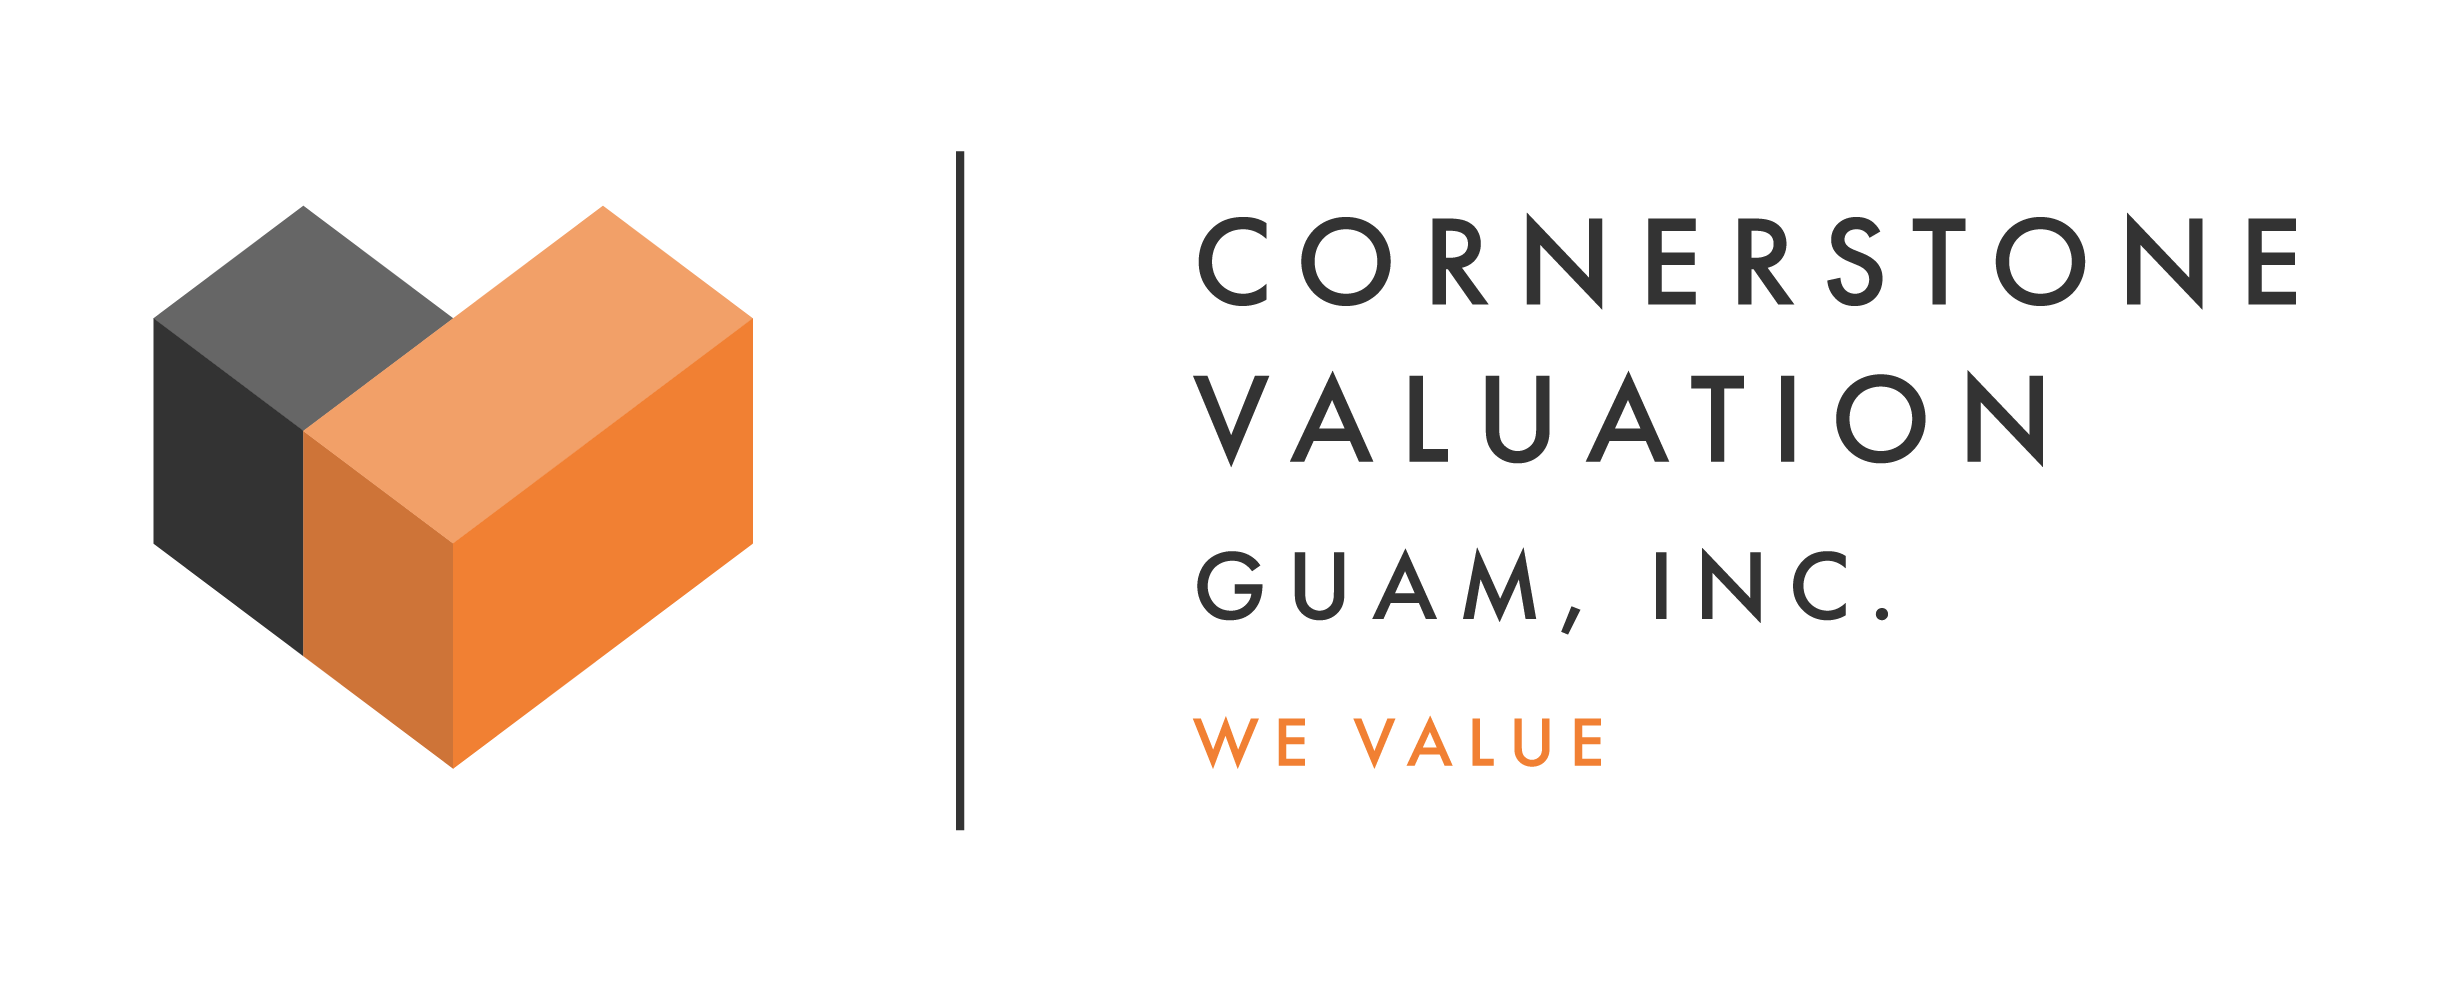 Cornerstone Valuation